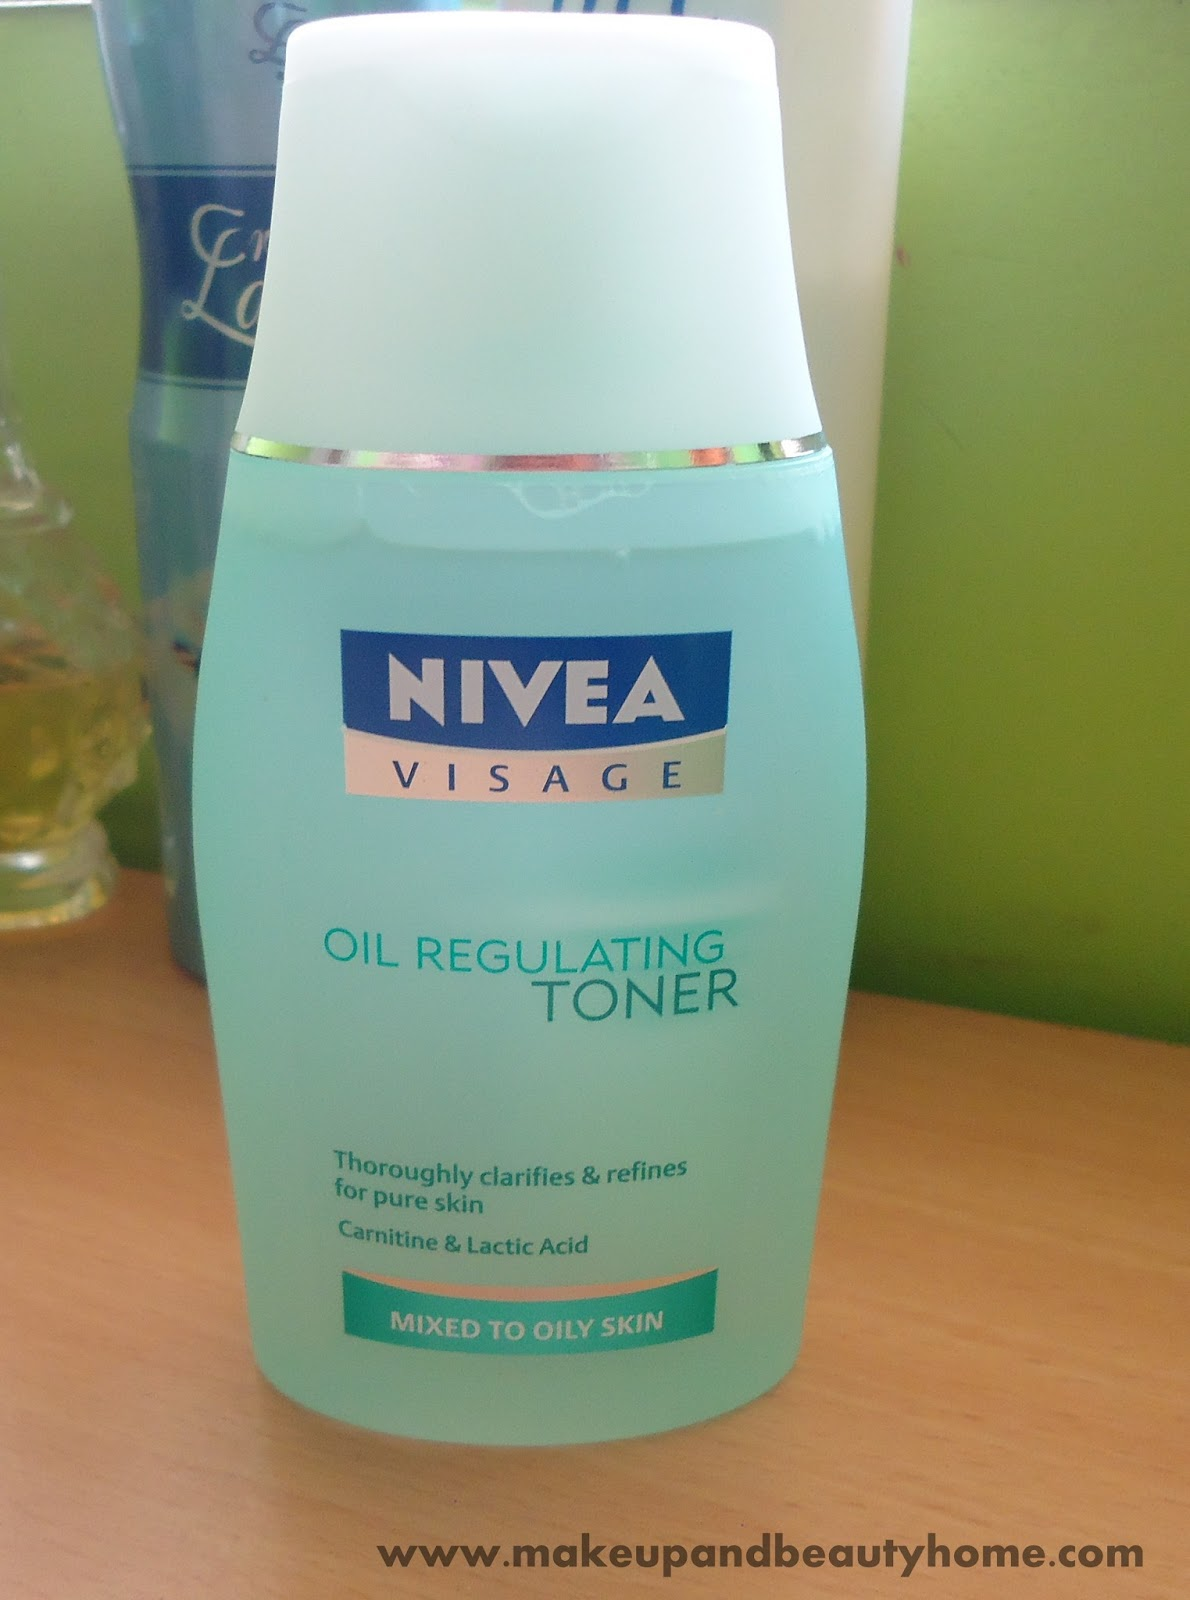 Nivea Visage Oil Regulating Toner Review